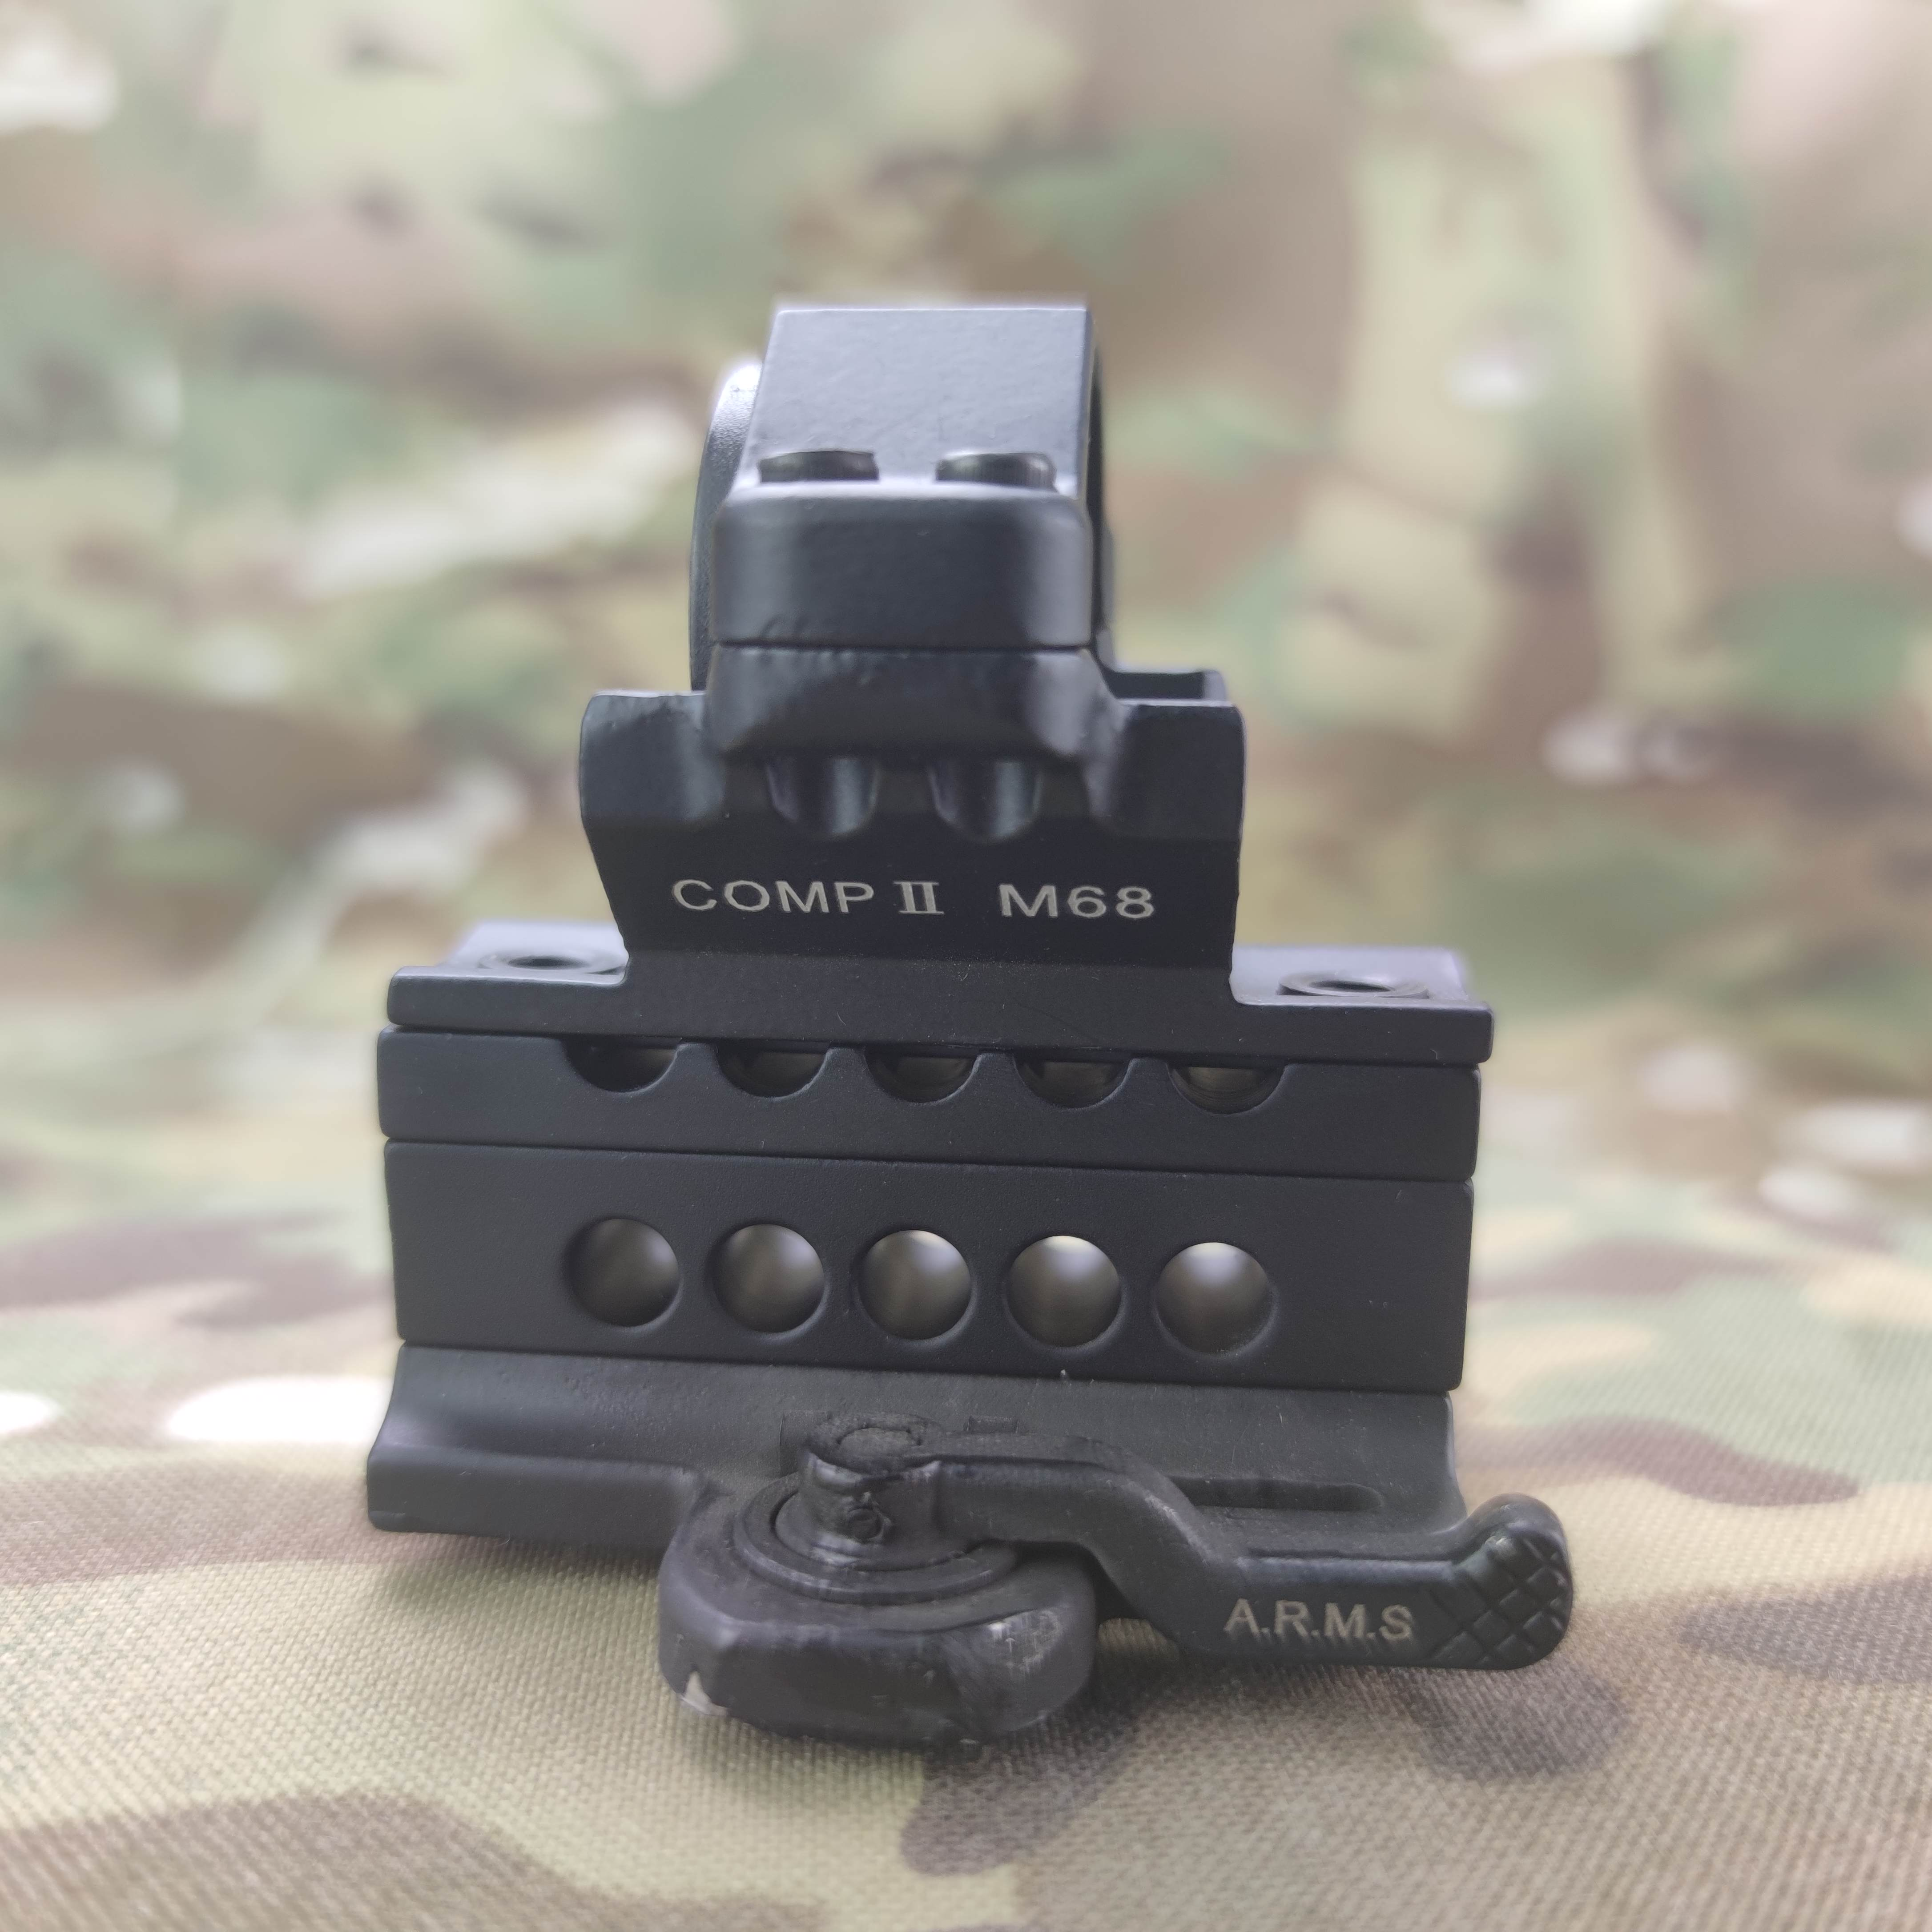 Airsoft M2 arms Mount MK18 Comp Mount For M2 M3 Type Tactical Sight Gun Weapon Light Torch Mount RIS 20mm Weaver Rail